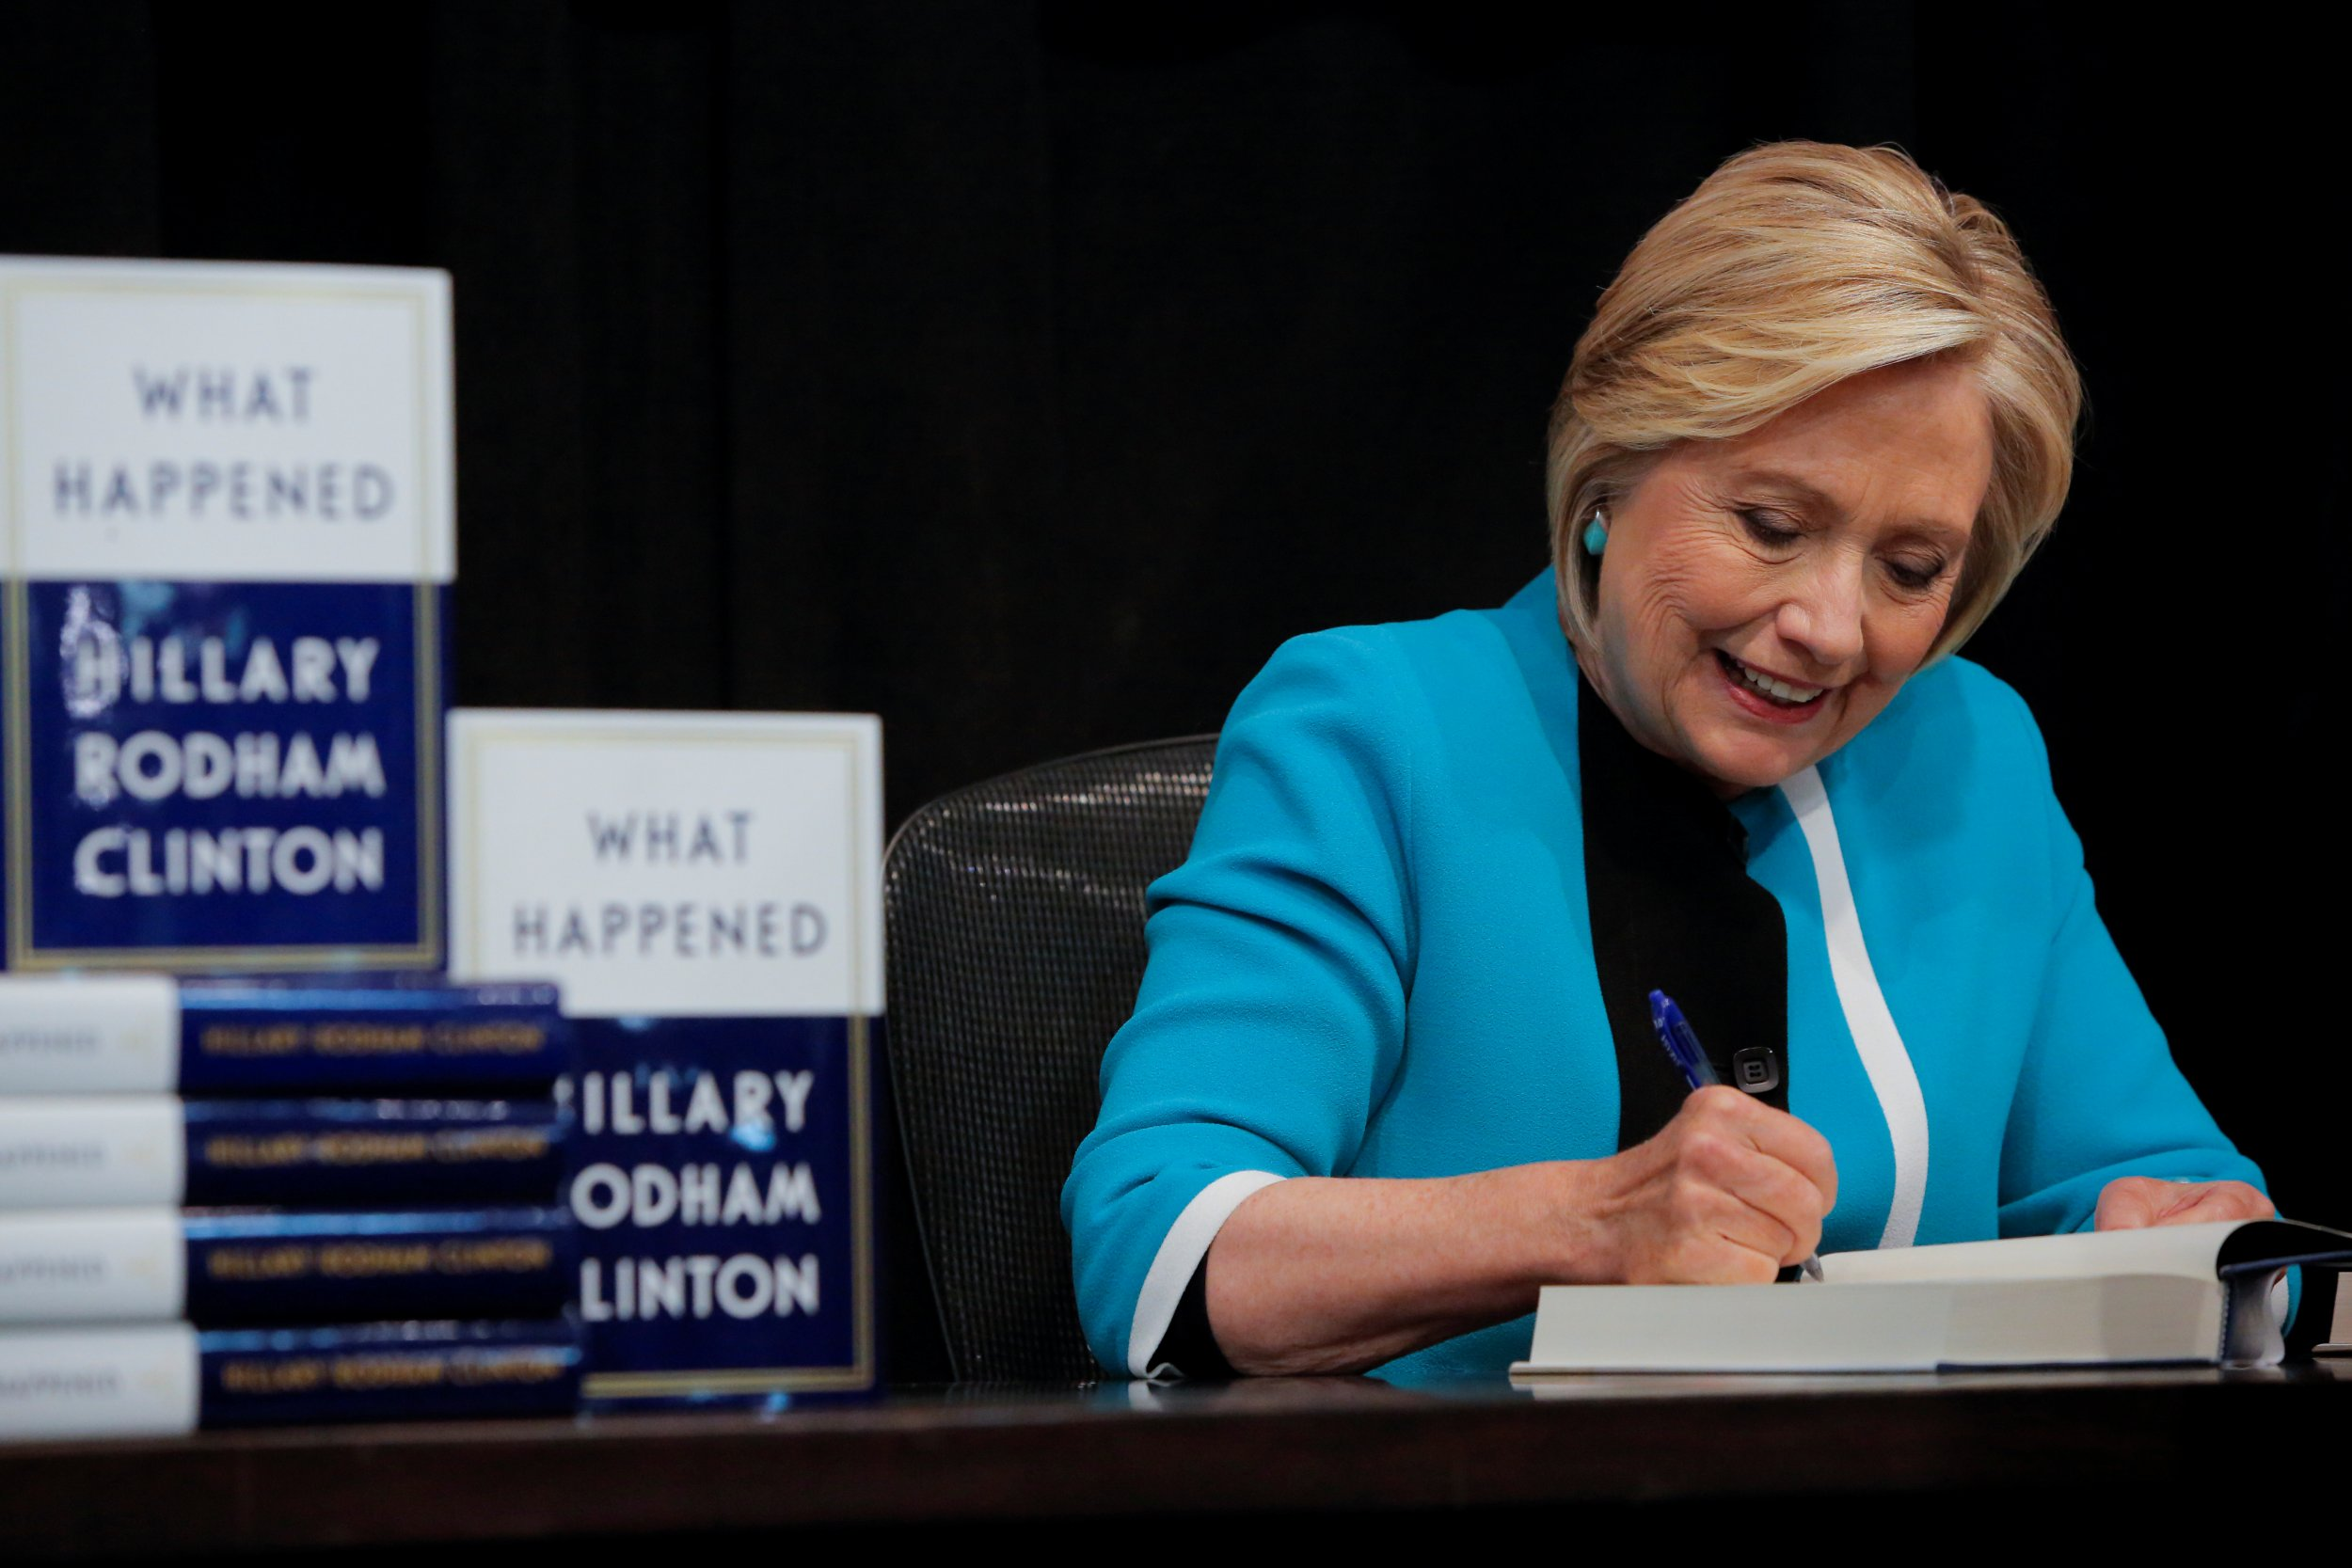 Hillary Clinton used an expletive on TV and Fox News is losing it